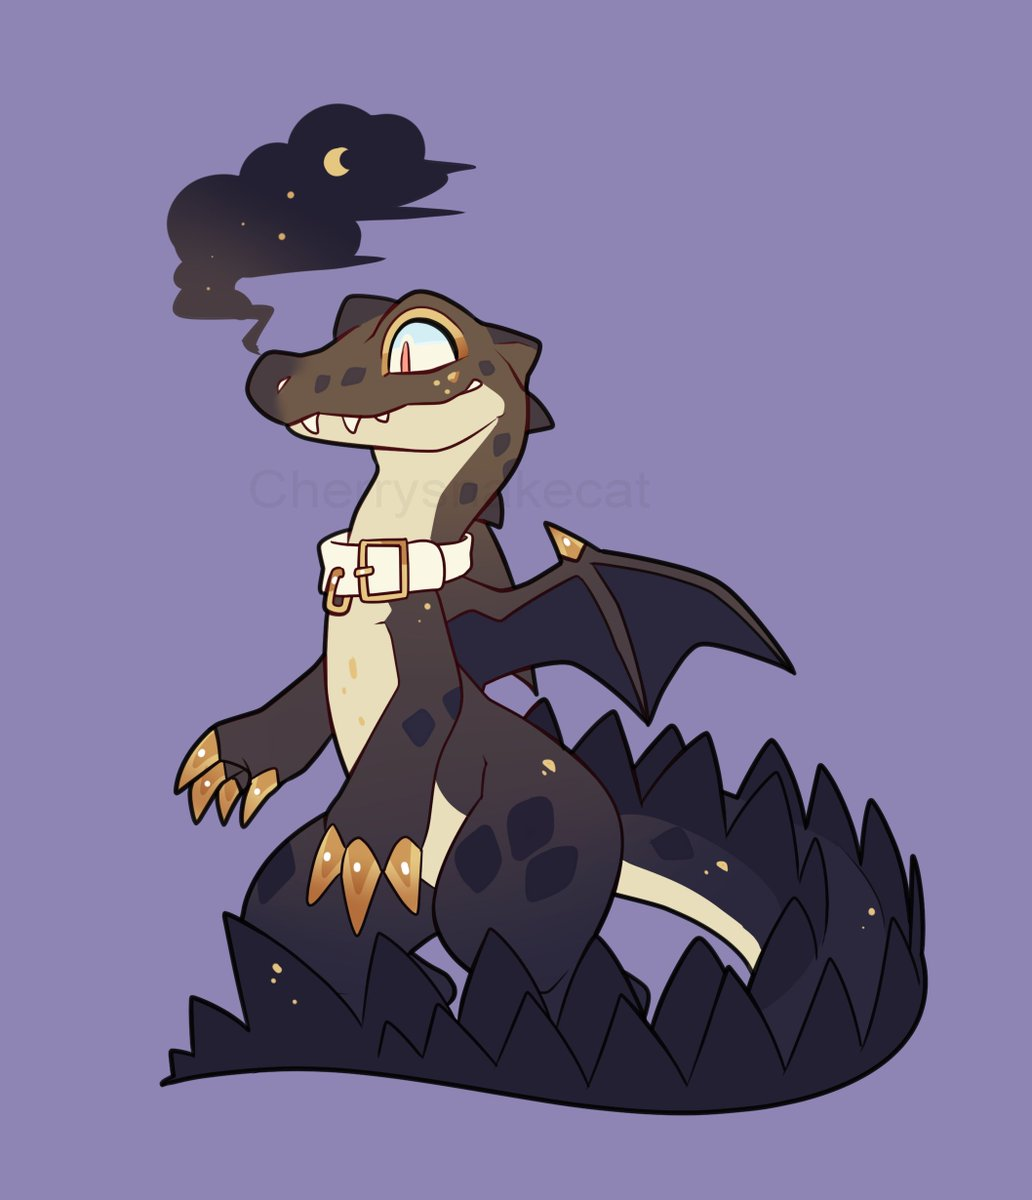 Tonight a fancy Alligator has come to visit you 🌙